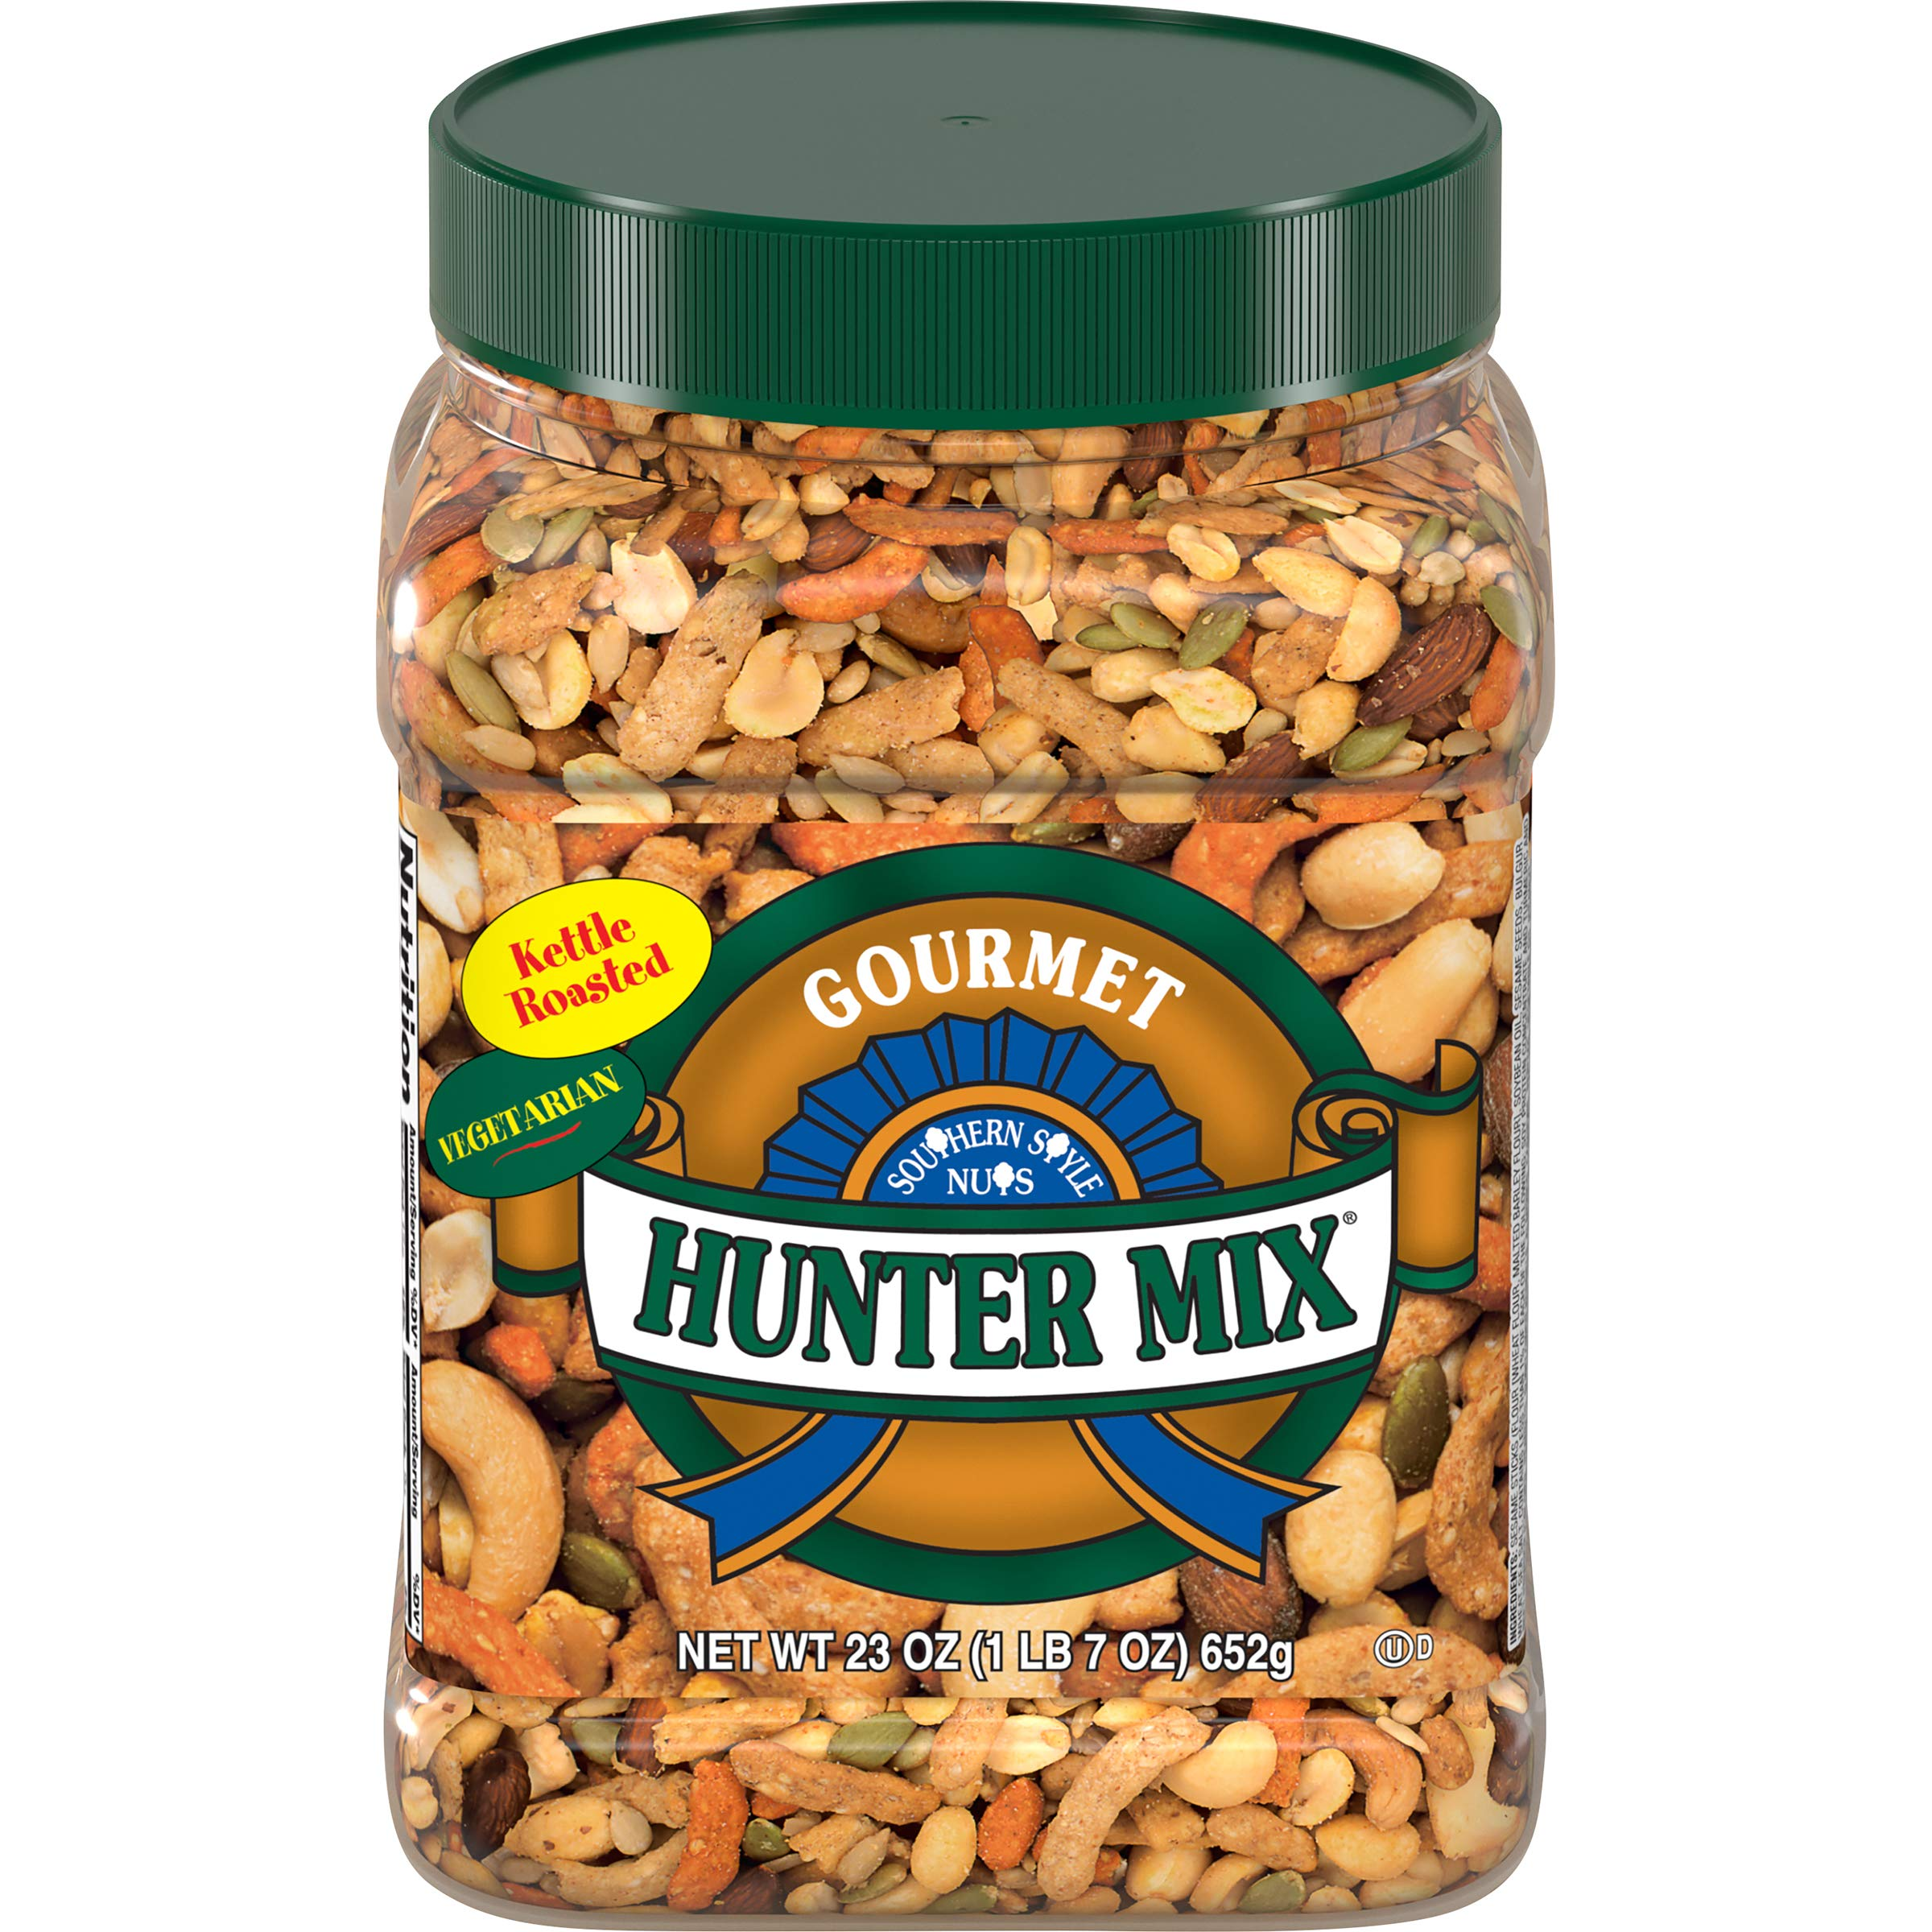 SOUTHERN STYLE NUTS Gourmet Hunter Mix, 23 oz